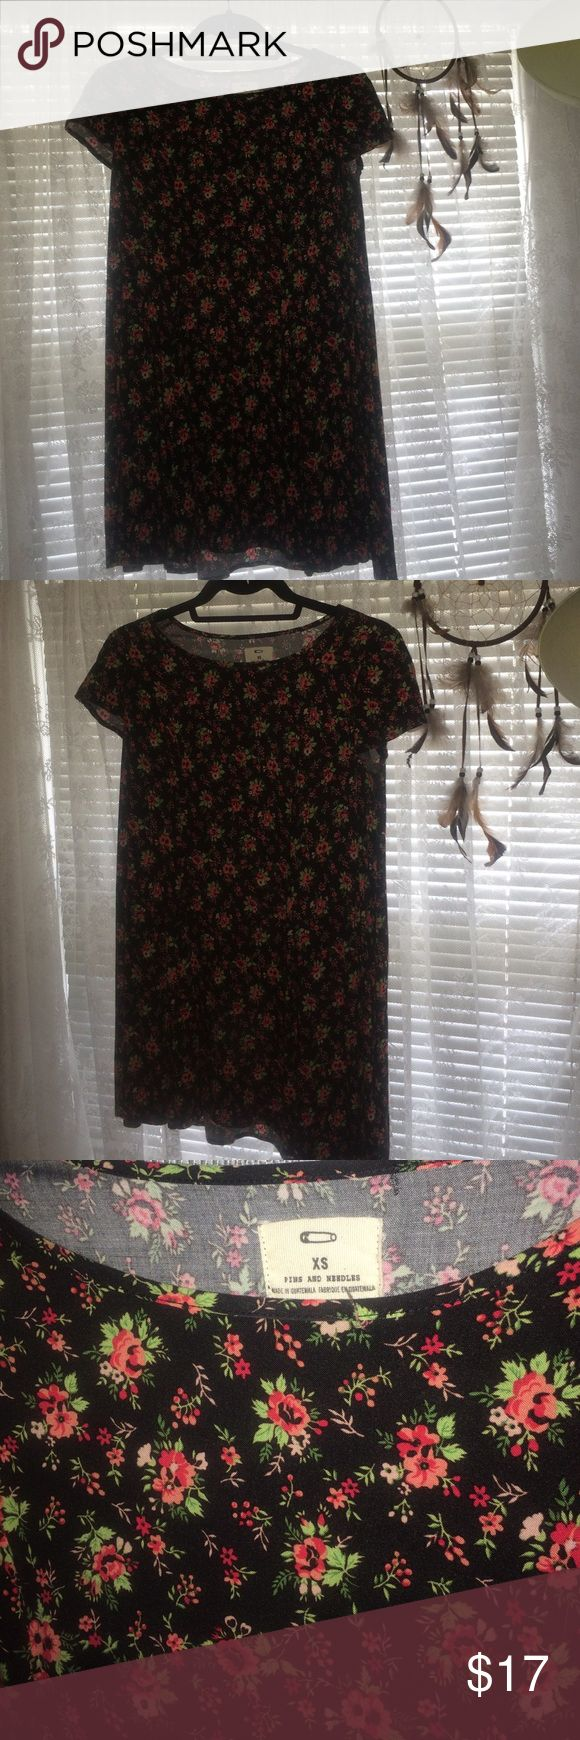 Pins and Needles Floral Shift Dress Size XS, this adorable Pins and Needles dress from Urban Outfitters is a must for the hot August weather! The dress is oversized, made with a light and airy fabric! Urban Outfitters Dresses Mini